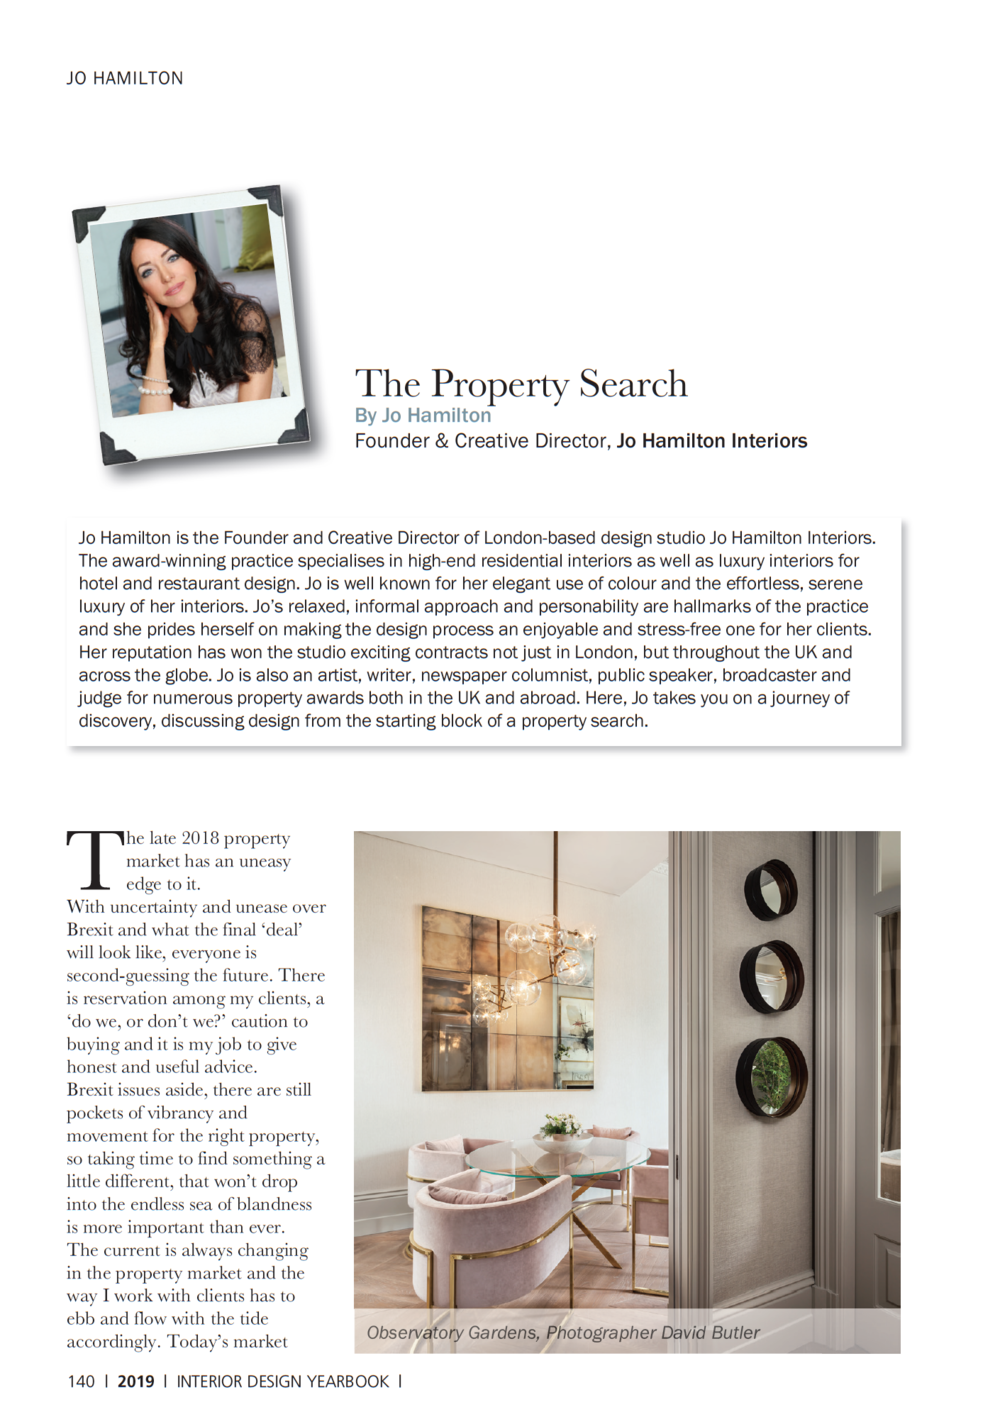 Interior Design Yearbook 2019 featuring luxury interior designer Jo Hamilton - consumer edition page 140